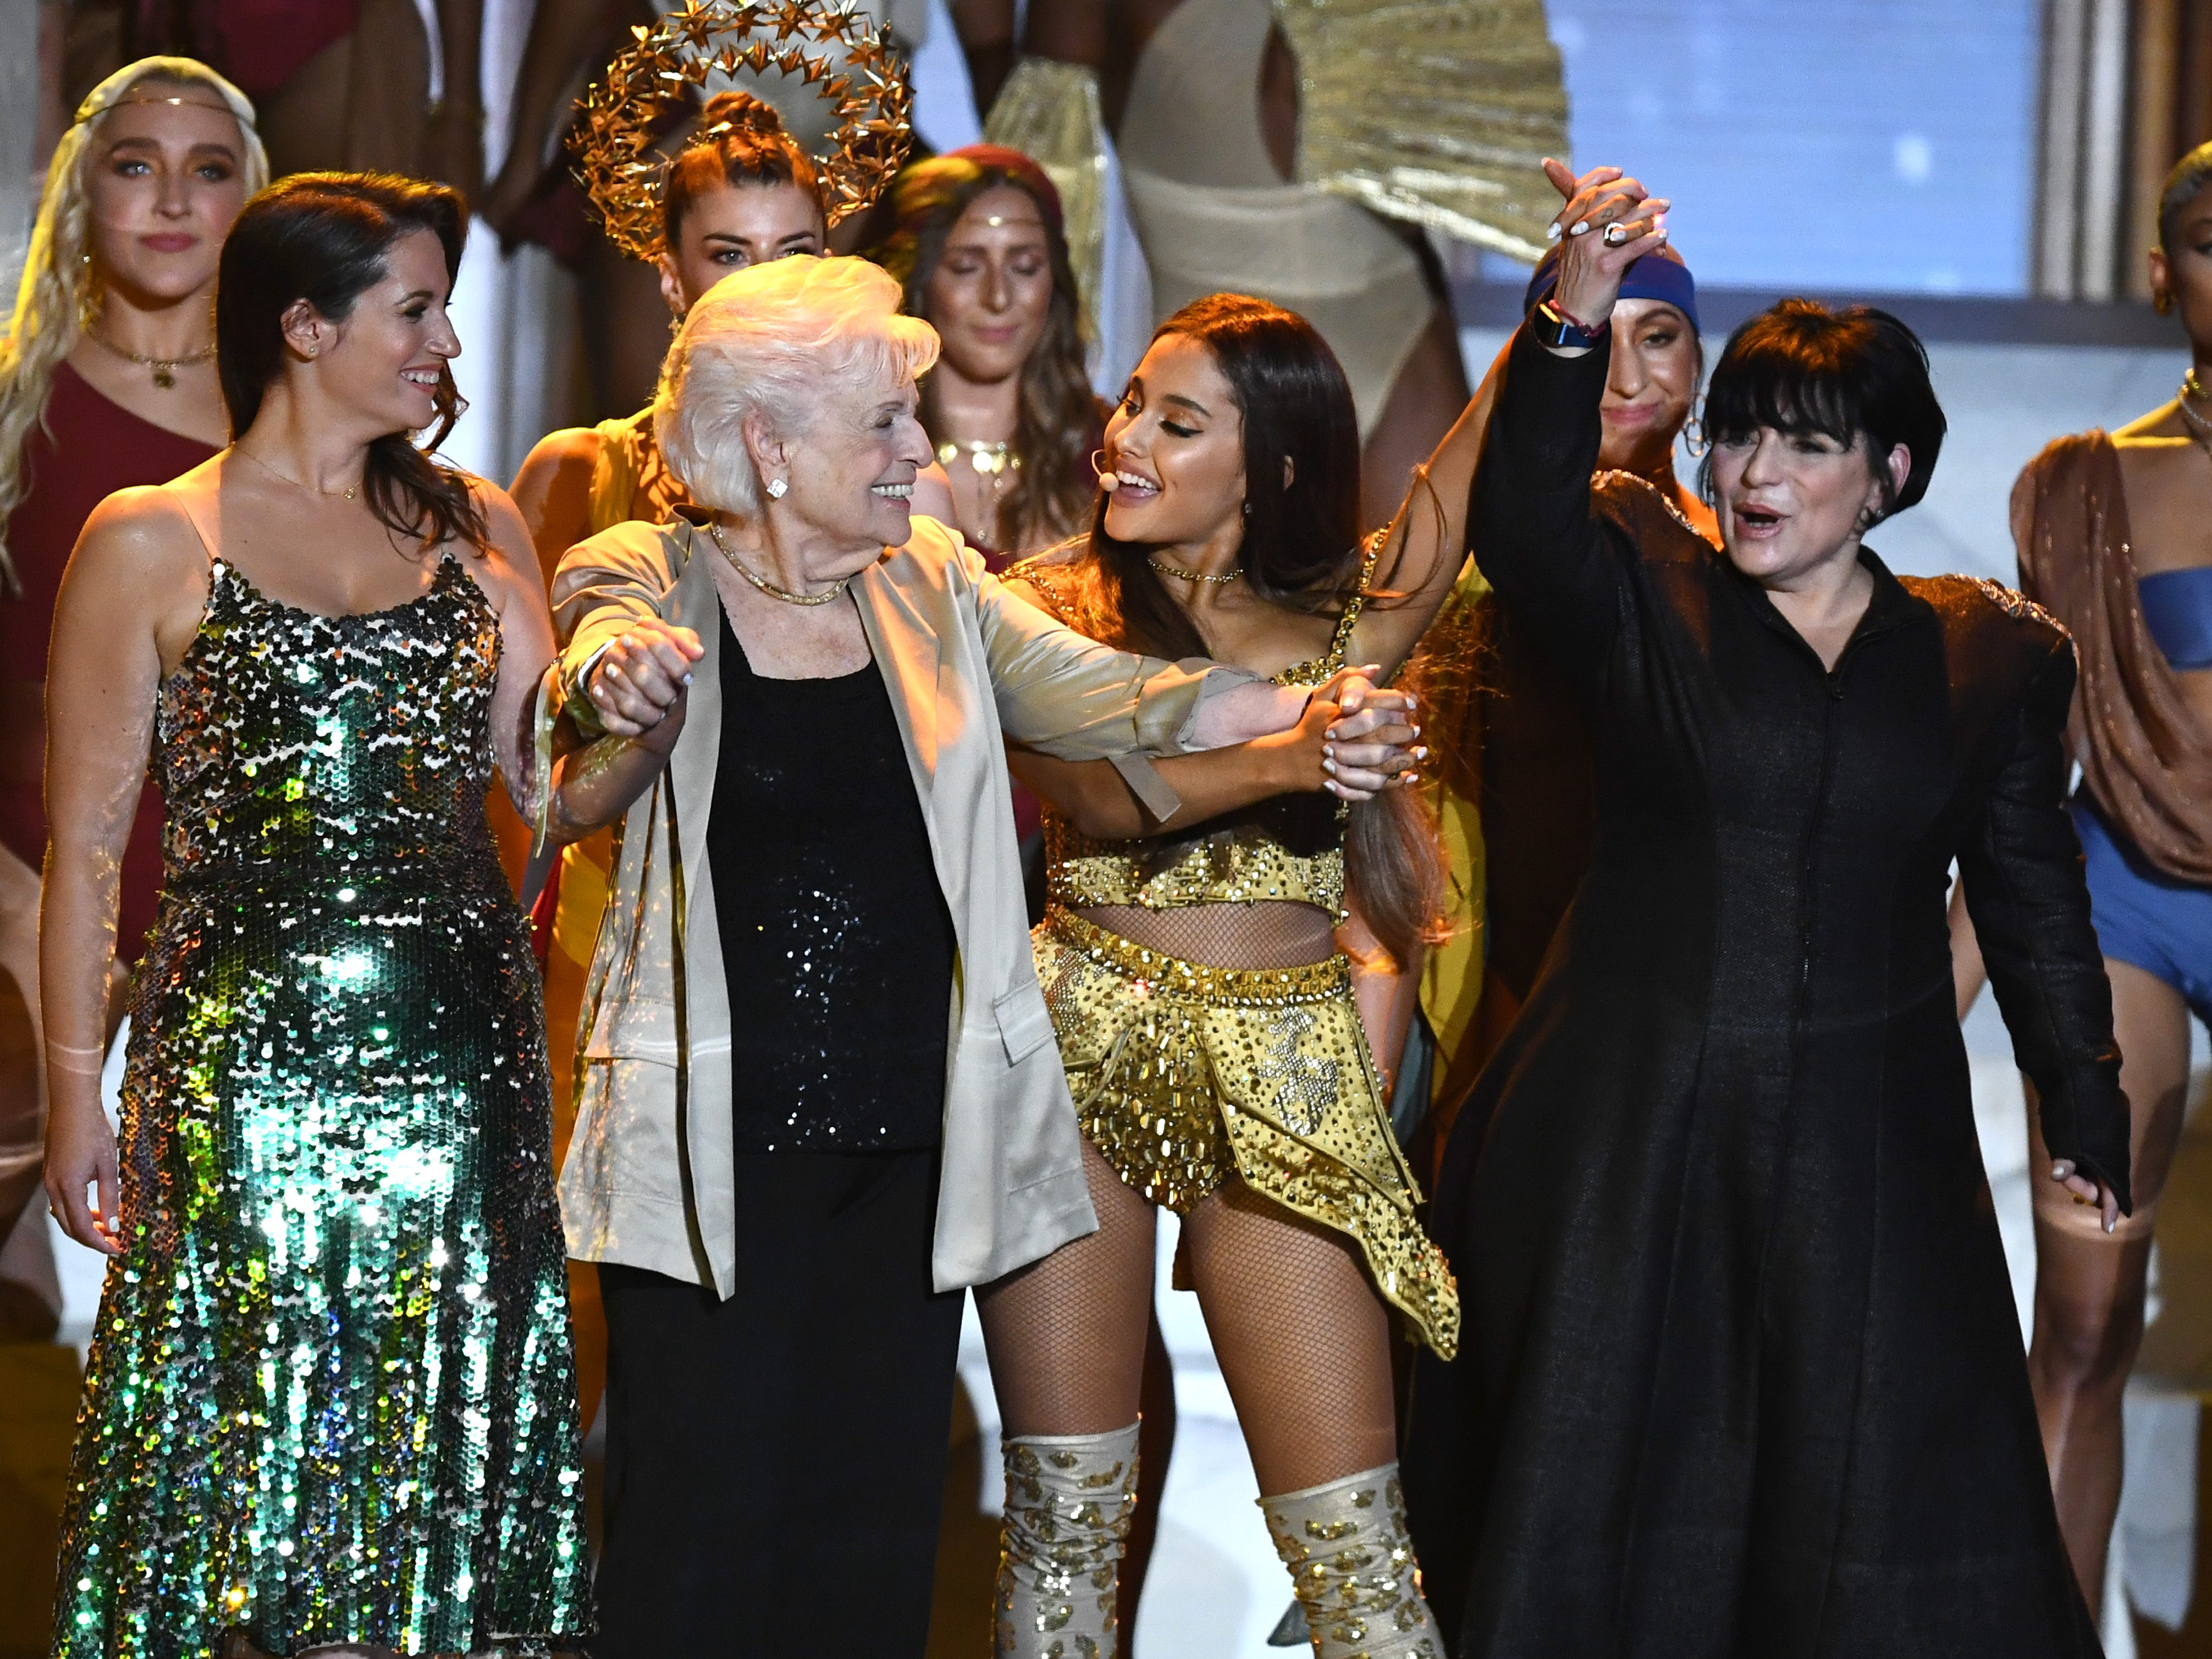 NEW YORK, NY - AUGUST 20:  (L-R) Lani Grande, Marjorie Grande, Ariana Grande, and Joan Grande perform onstage during the 2018 MTV Video Music Awards at Radio City Music Hall on August 20, 2018 in New York City.  (Photo by Noam Galai/WireImage) ORG XMIT: 775211585 ORIG FILE ID: 1020392548